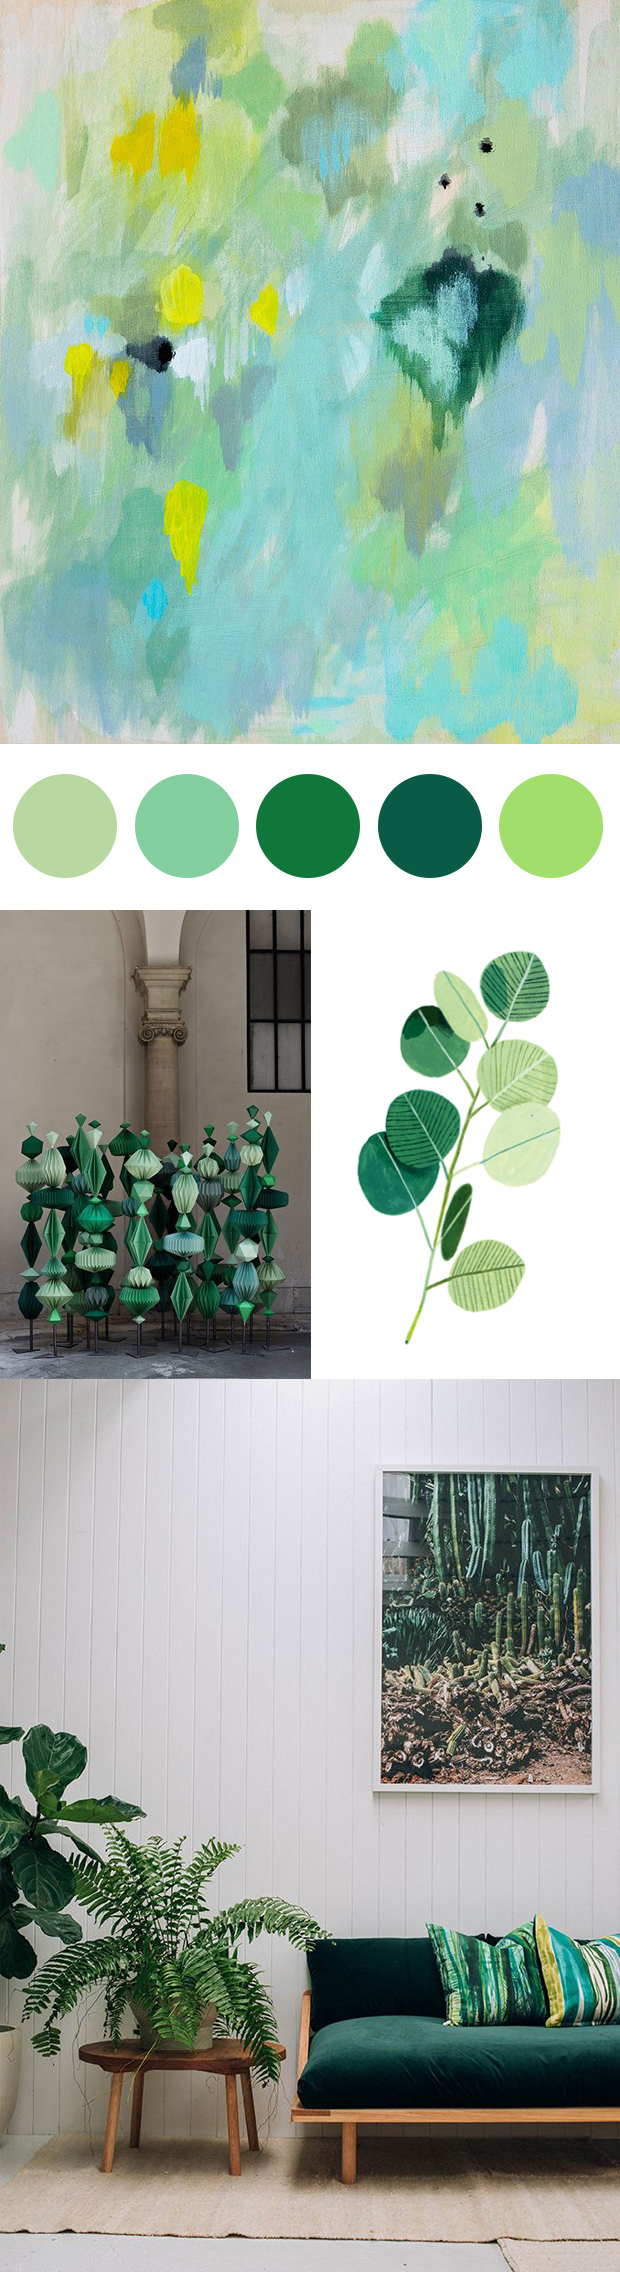 Inspired by Pantone Color of the Year: Greenery.